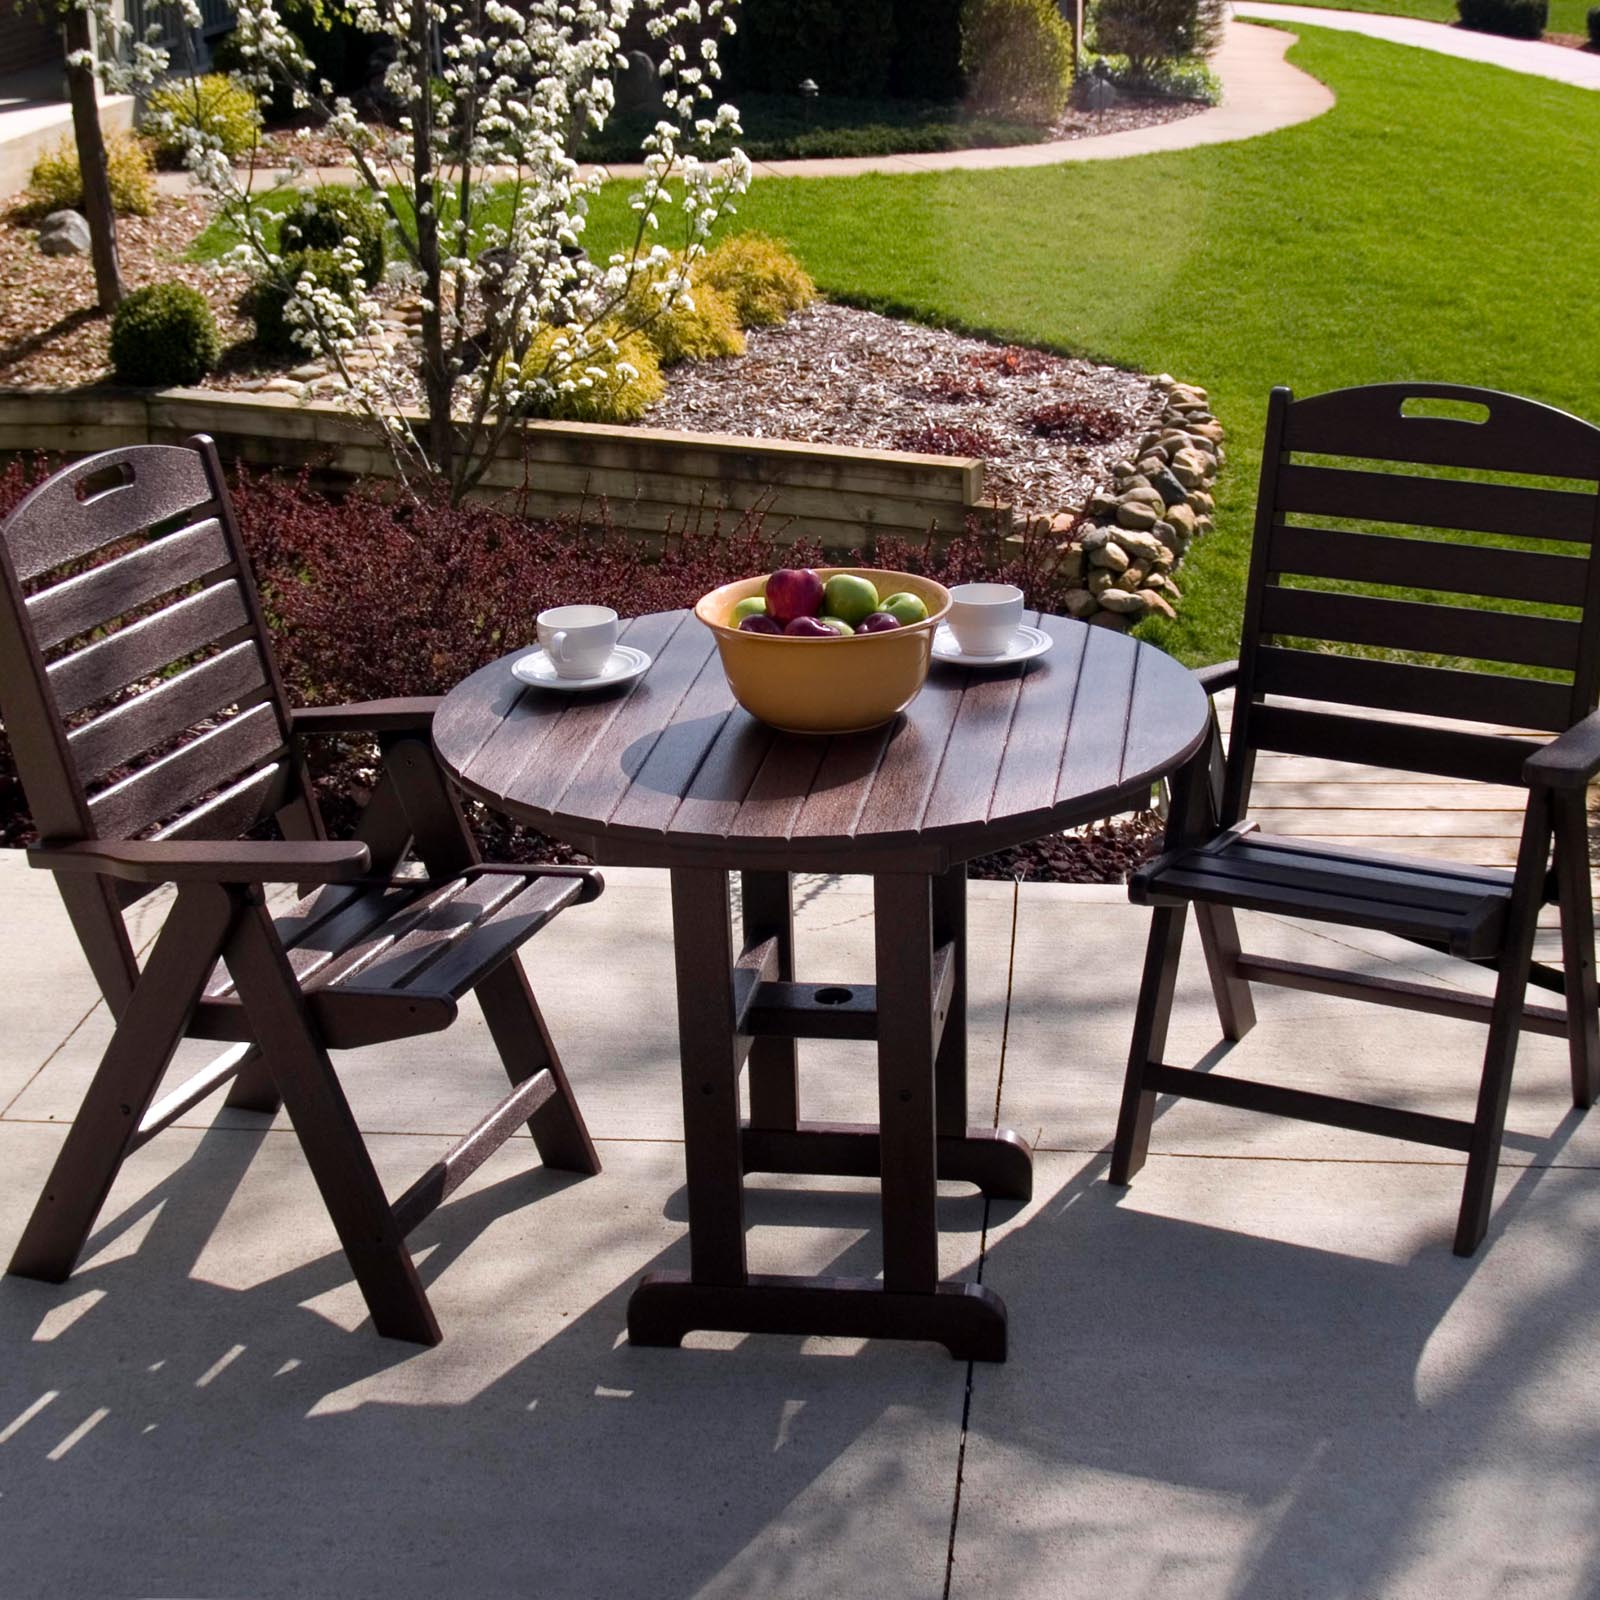 Outdoor Furniture Patio Sets Shop At